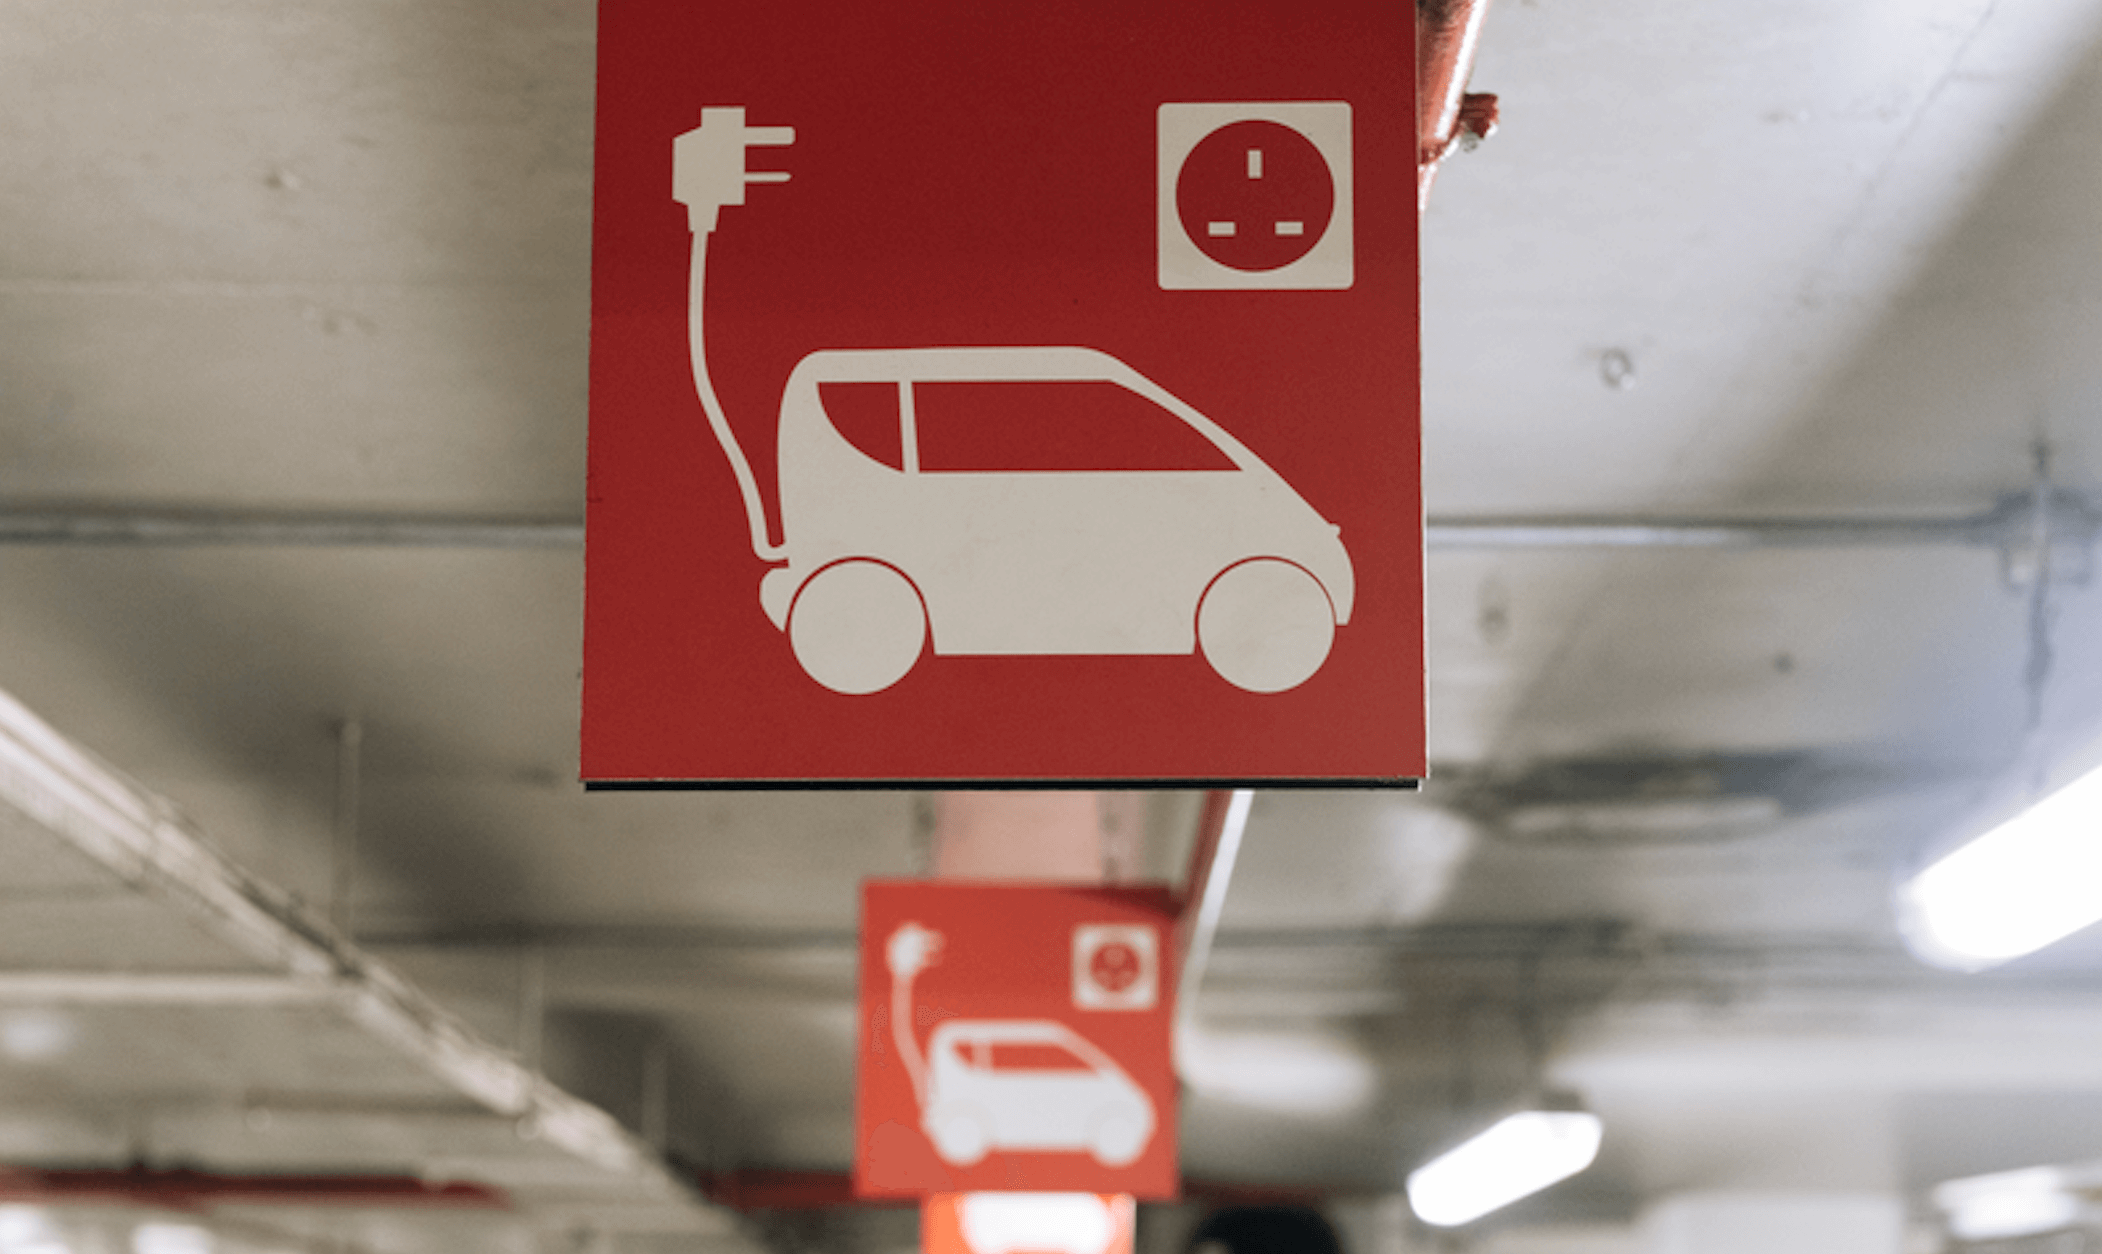 Mobile Payments for EV Charging Stations